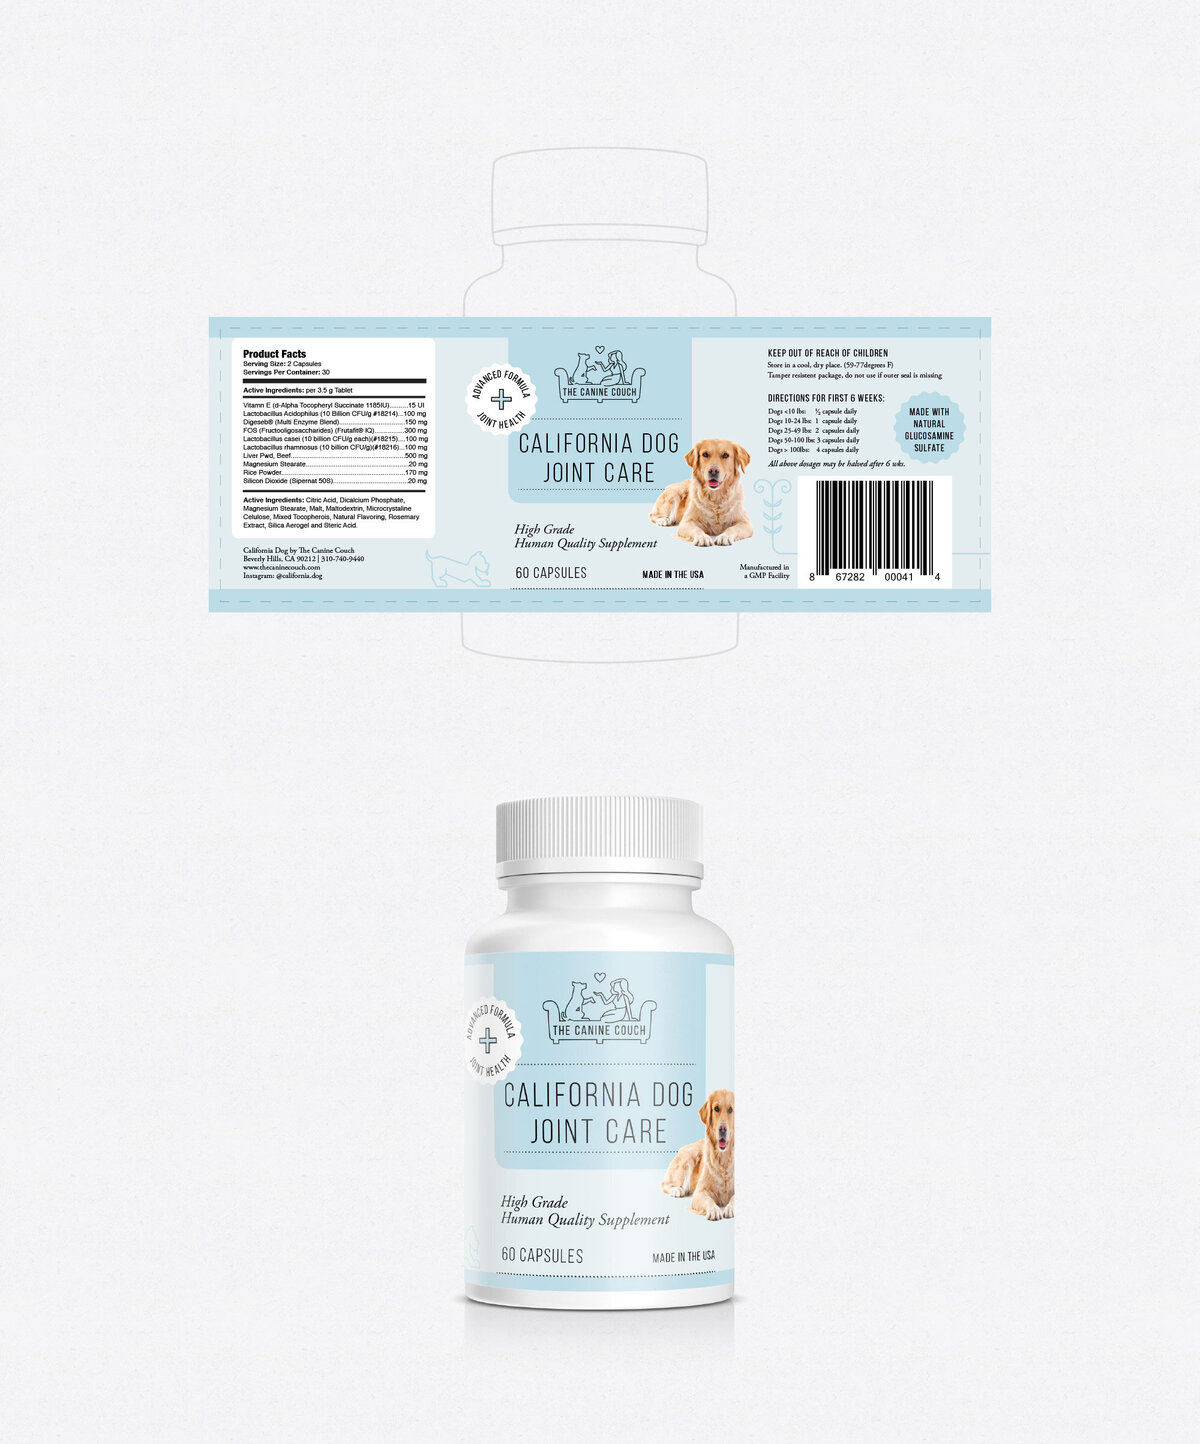 Joint-Care-Dog-Supplement-Dieline-Design-By-Kathy-Ramirez